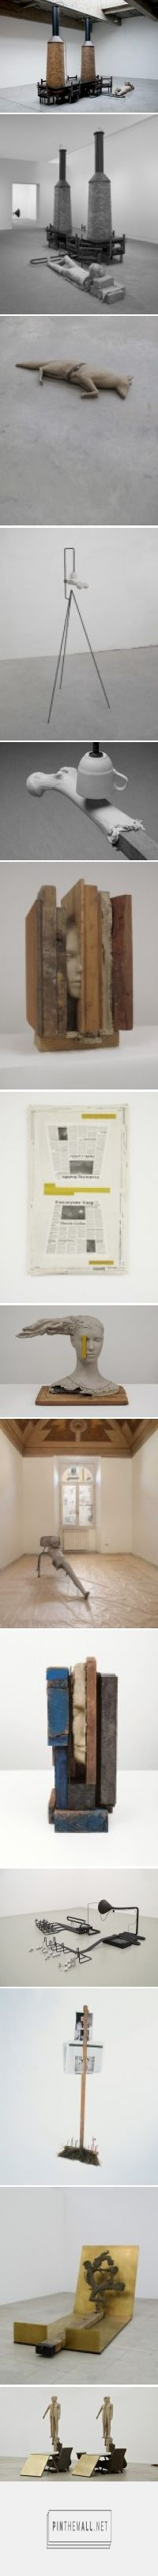 Mark Manders - Works (1) - created via http://pinthemall.net